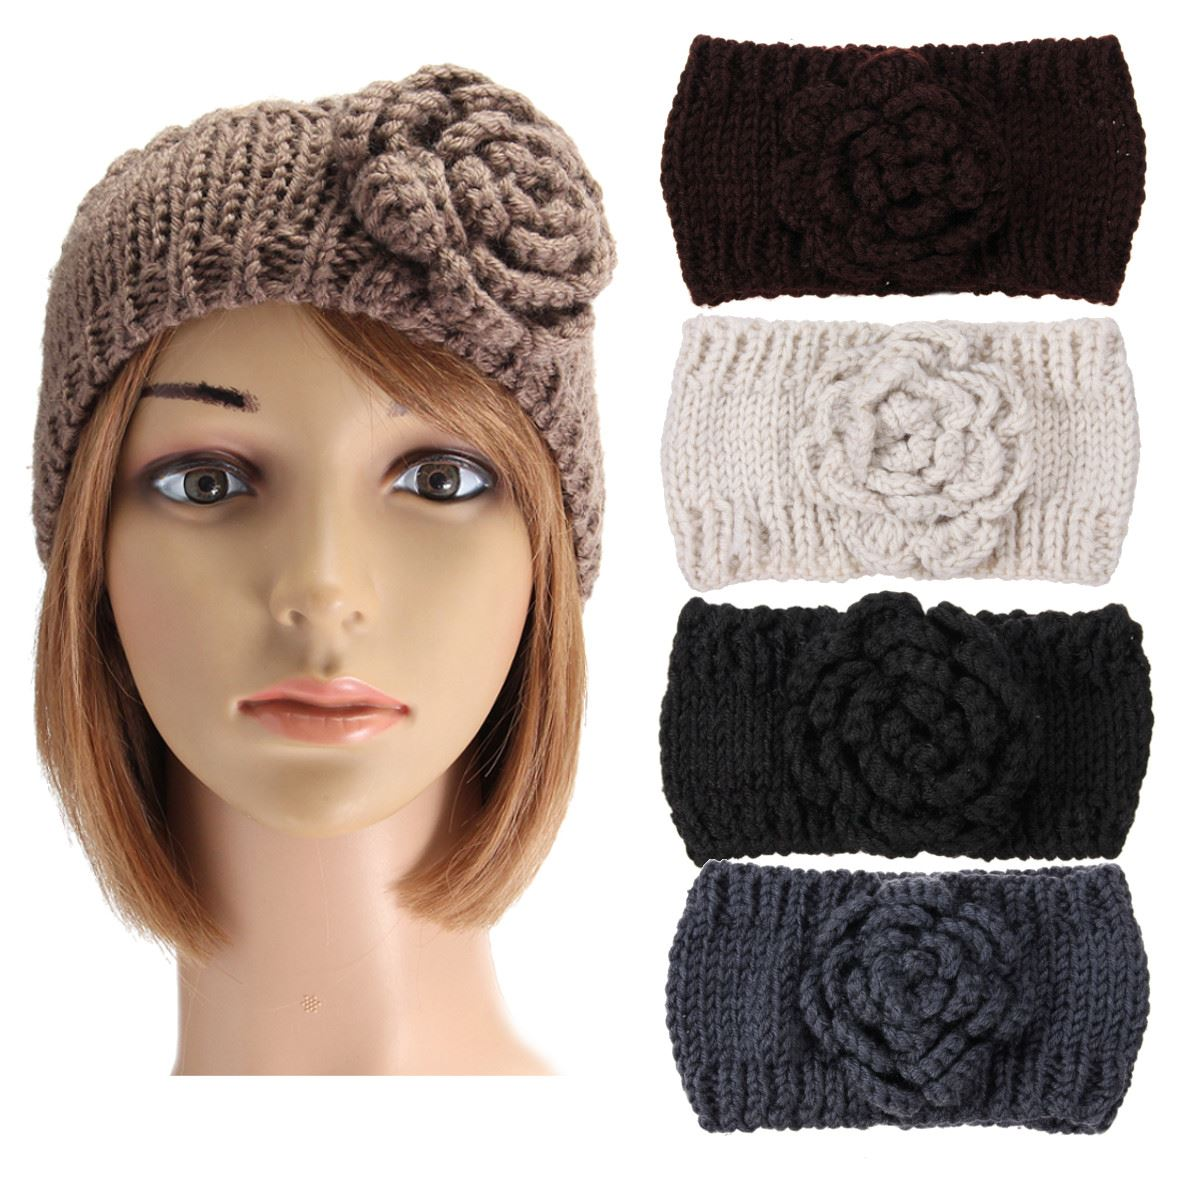 Knitting Pattern Ski Headband : 2016 New Arrive Ladies Women Girl Winter Rose Ski Headband ...